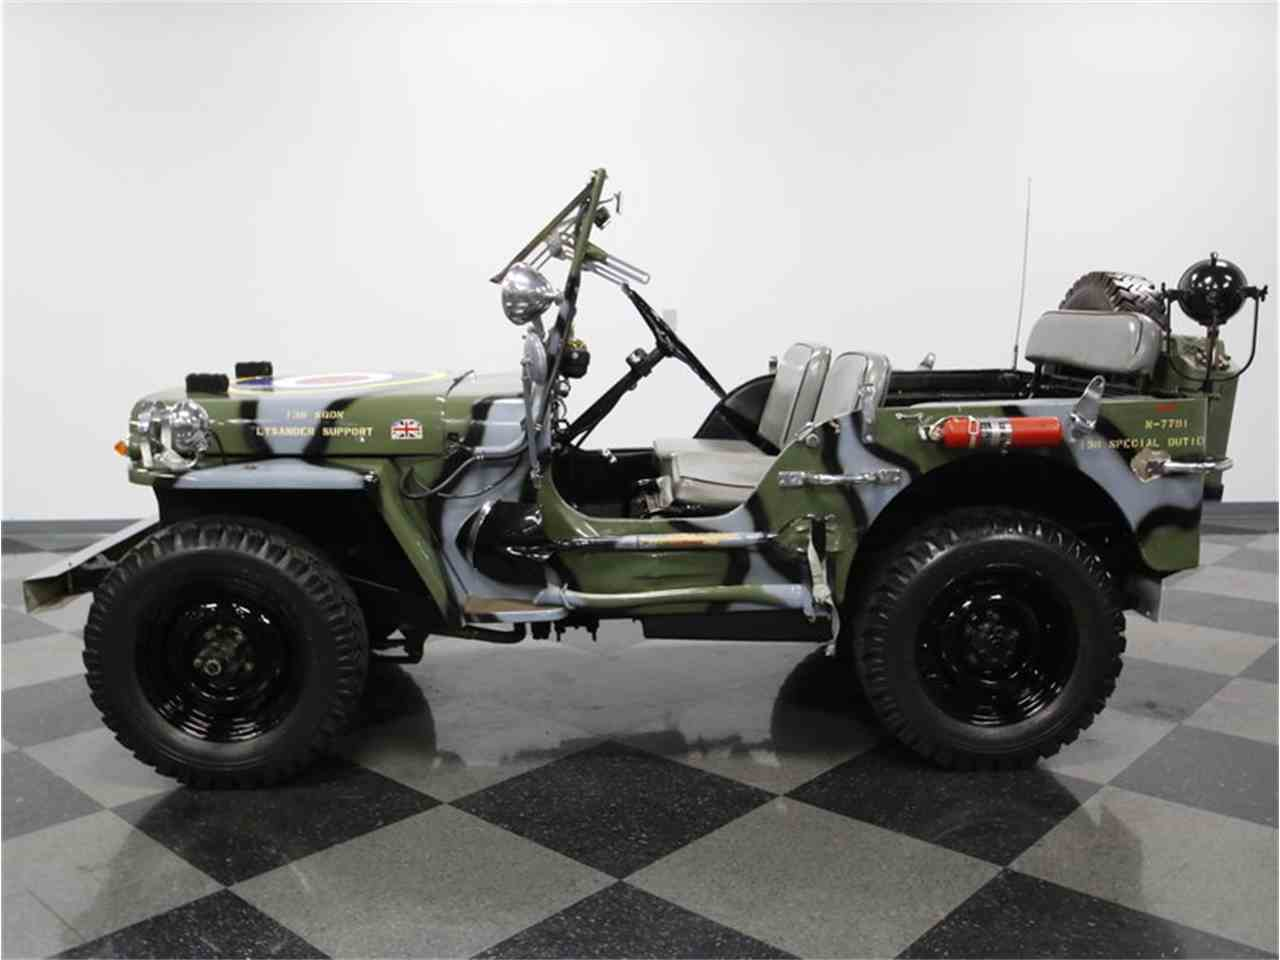 Jeep mb jeep : 1945 Willys MB Military Jeep for Sale | ClassicCars.com | CC-990465